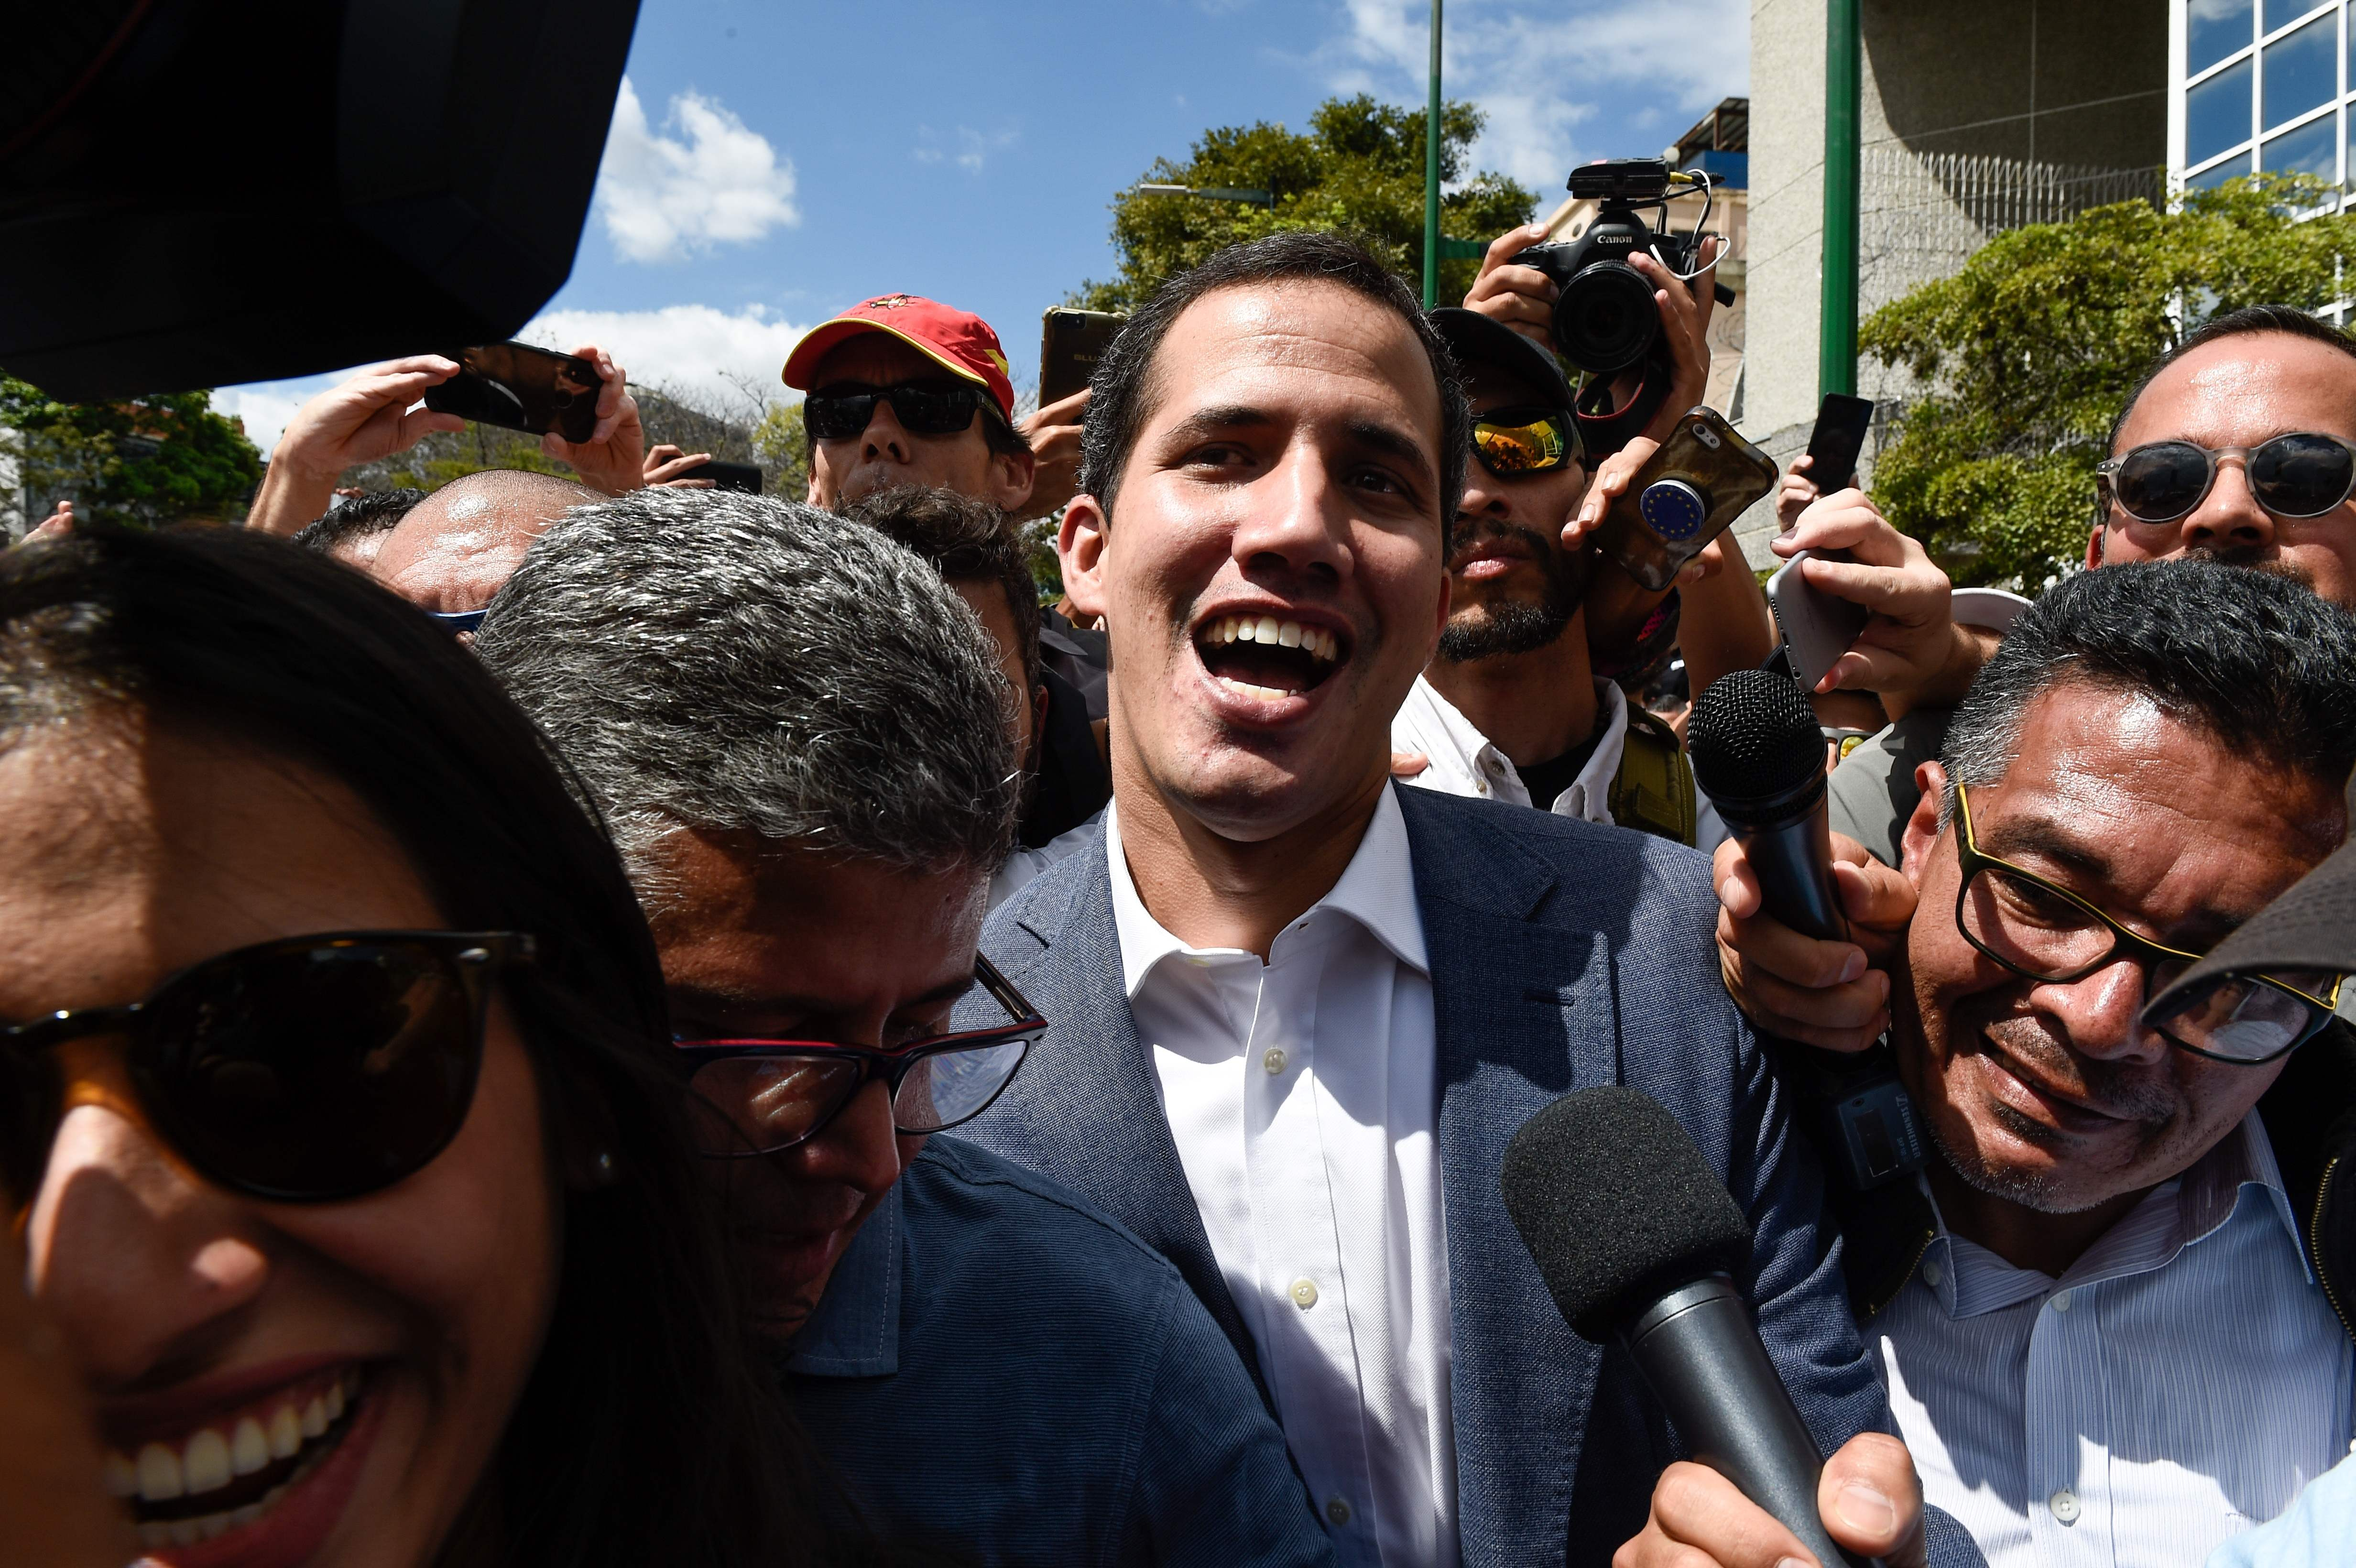 """The head of Venezuela's National Assembly and the country's self-proclaimed """"acting president"""" Juan Guaido (C) leaves after a rally with opposition supporters in Caracas, on January 26, 2019. (Photo by Federico PARRA / AFP)"""